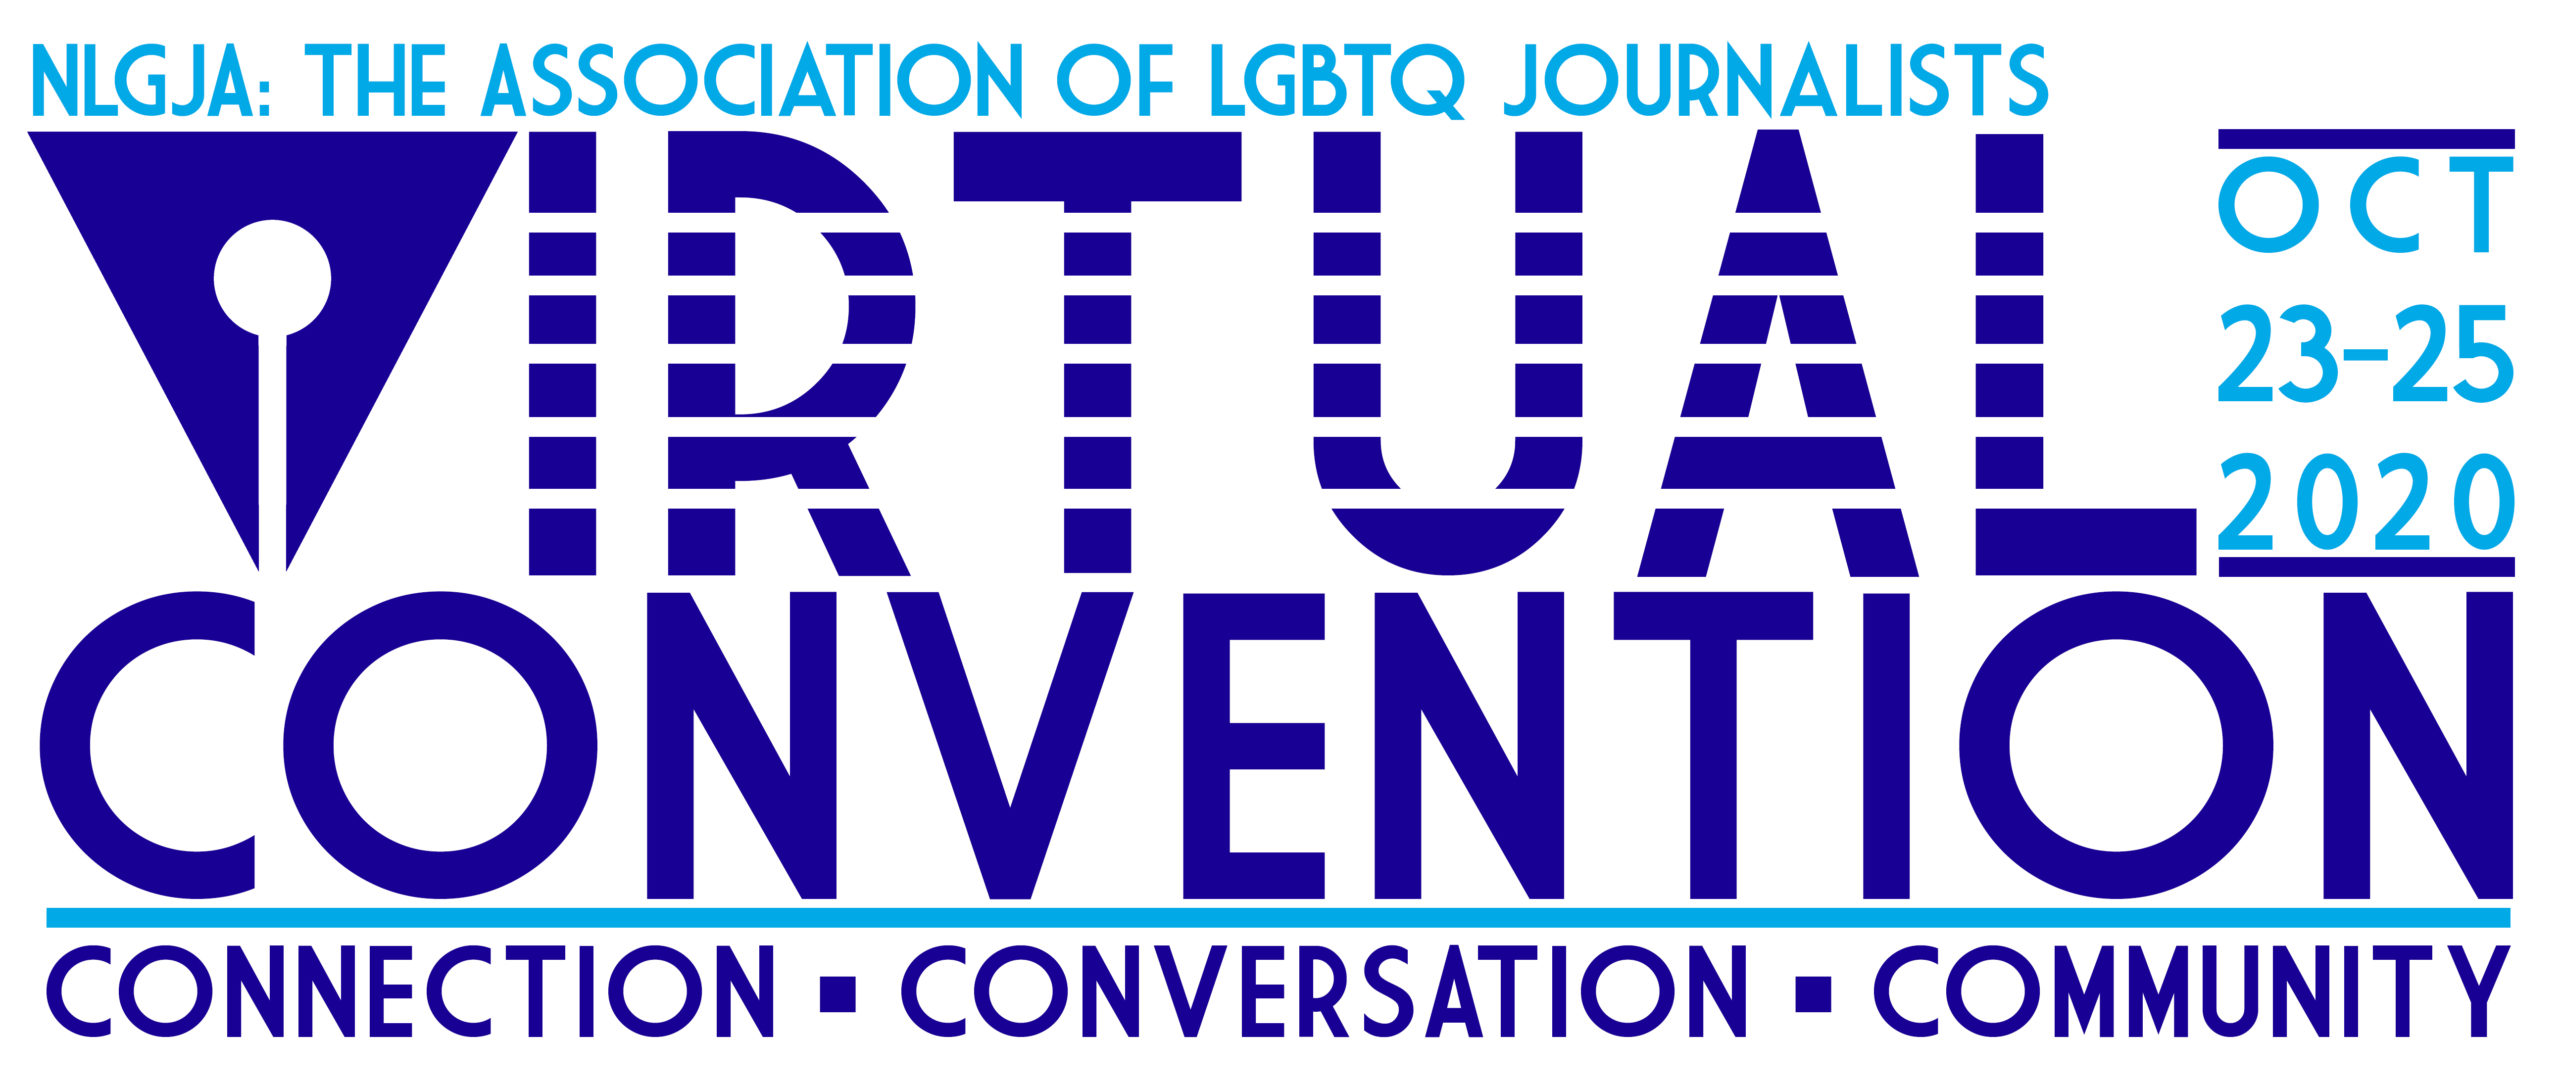 NLGJA: The Association of LGBTQ Journalists 2020 Virtual Convention